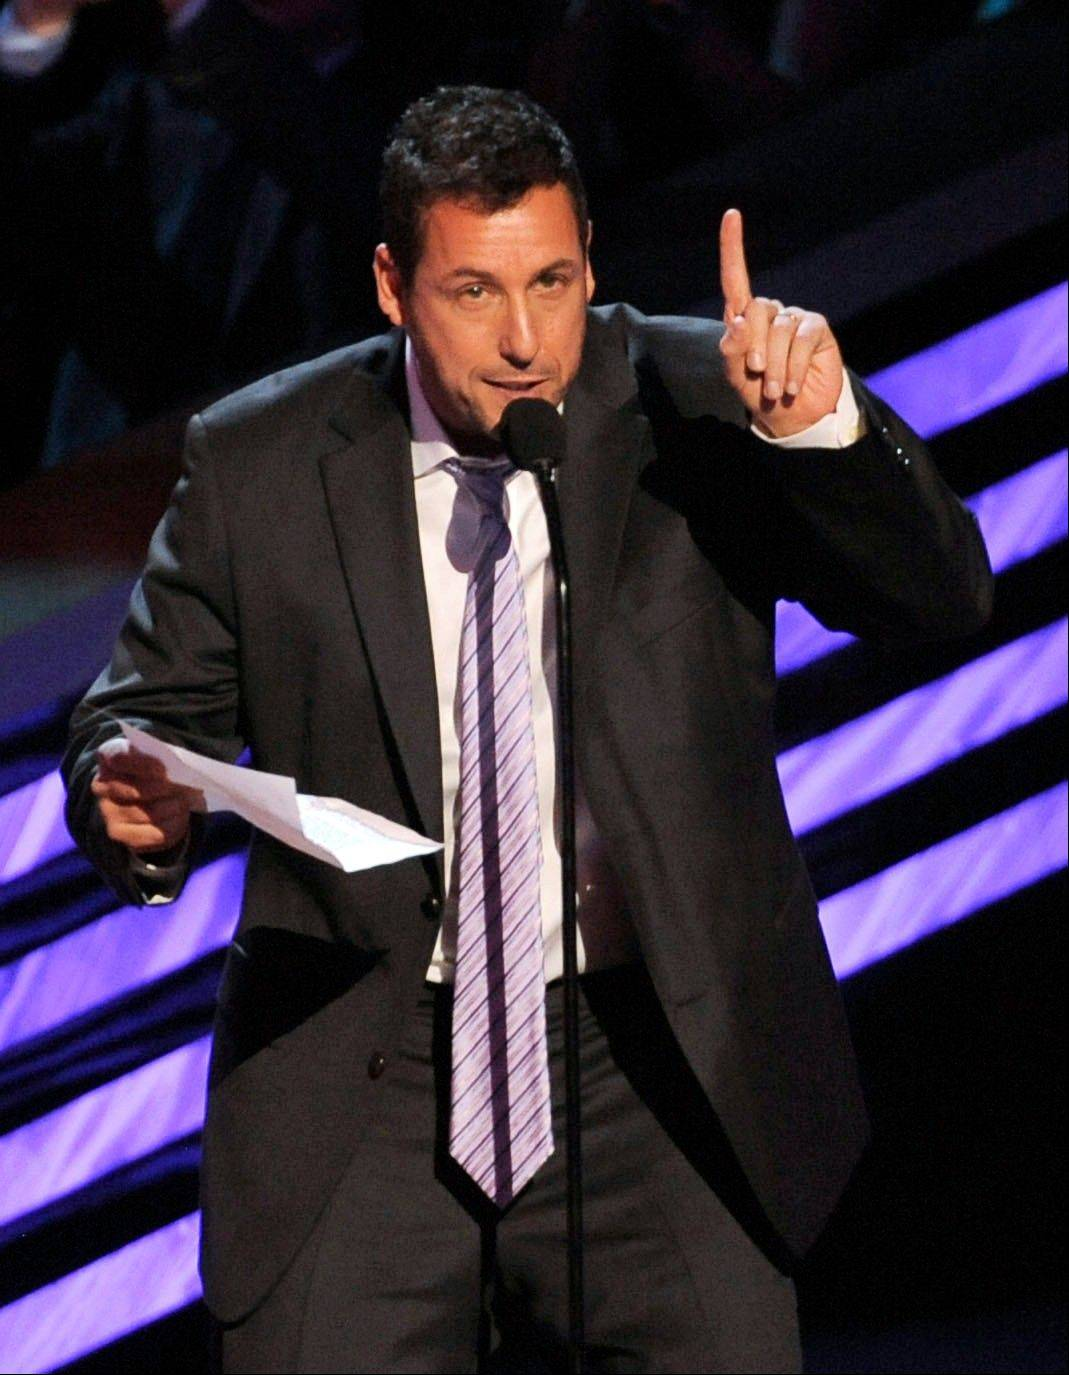 Adam Sandler accepts the award for favorite comedic actor at the People's Choice Awards at the Nokia Theatre on Wednesday Jan. 9, 2013, in Los Angeles.